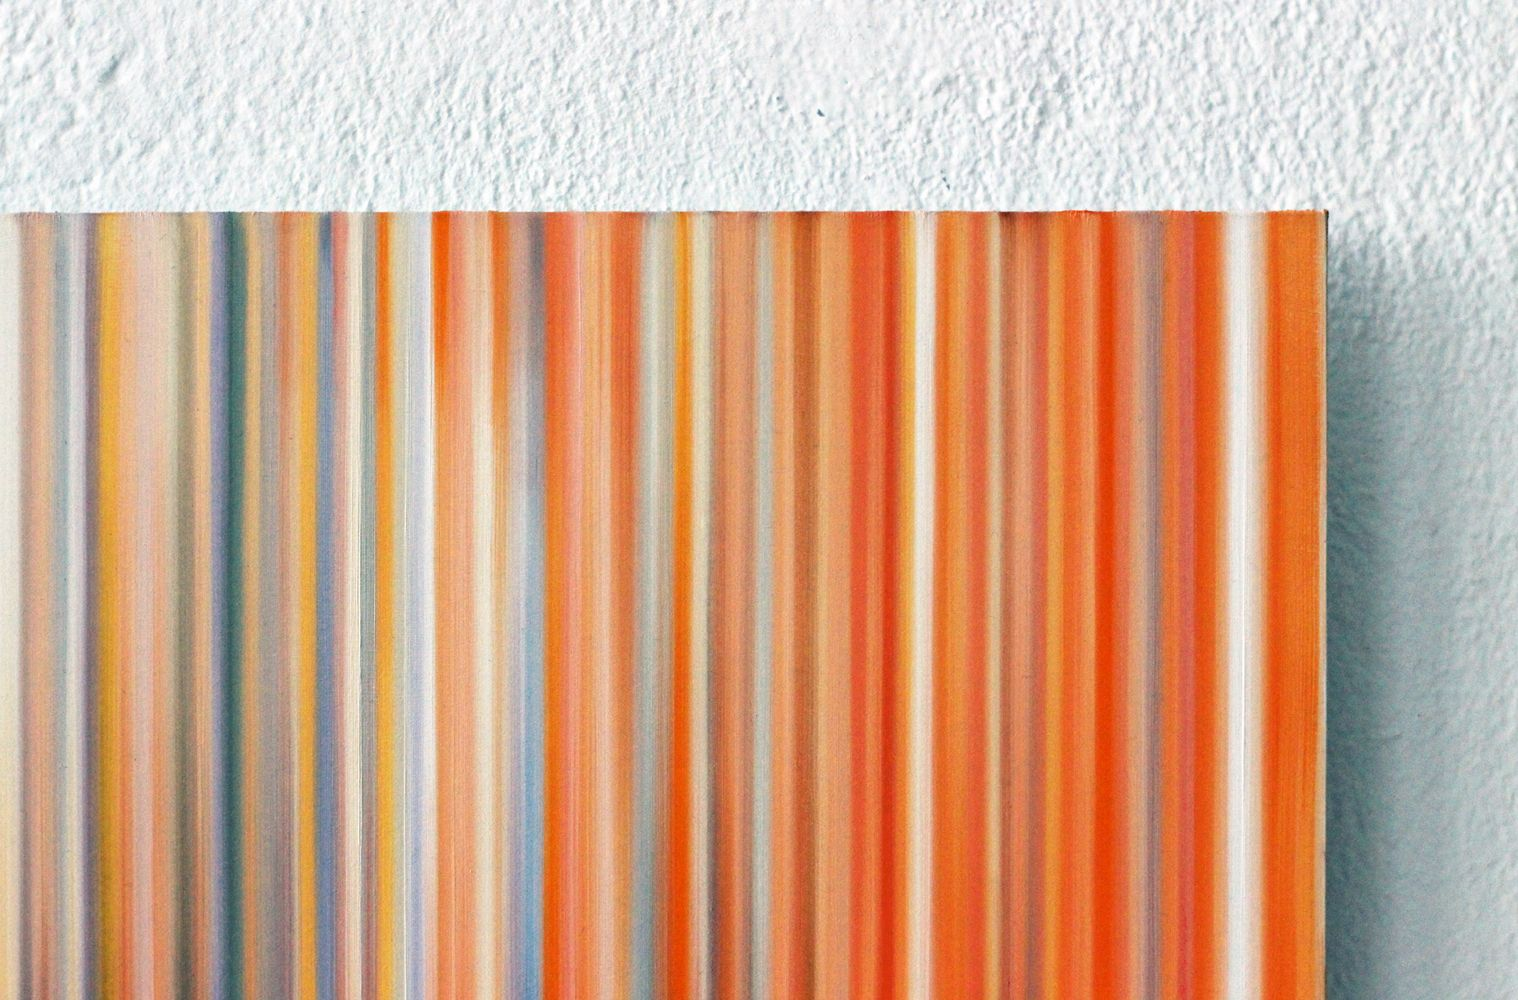 Light'n'Lines No.15 (BlackWhiteOrange),Doris Marten,Contemporary painting, detail 3